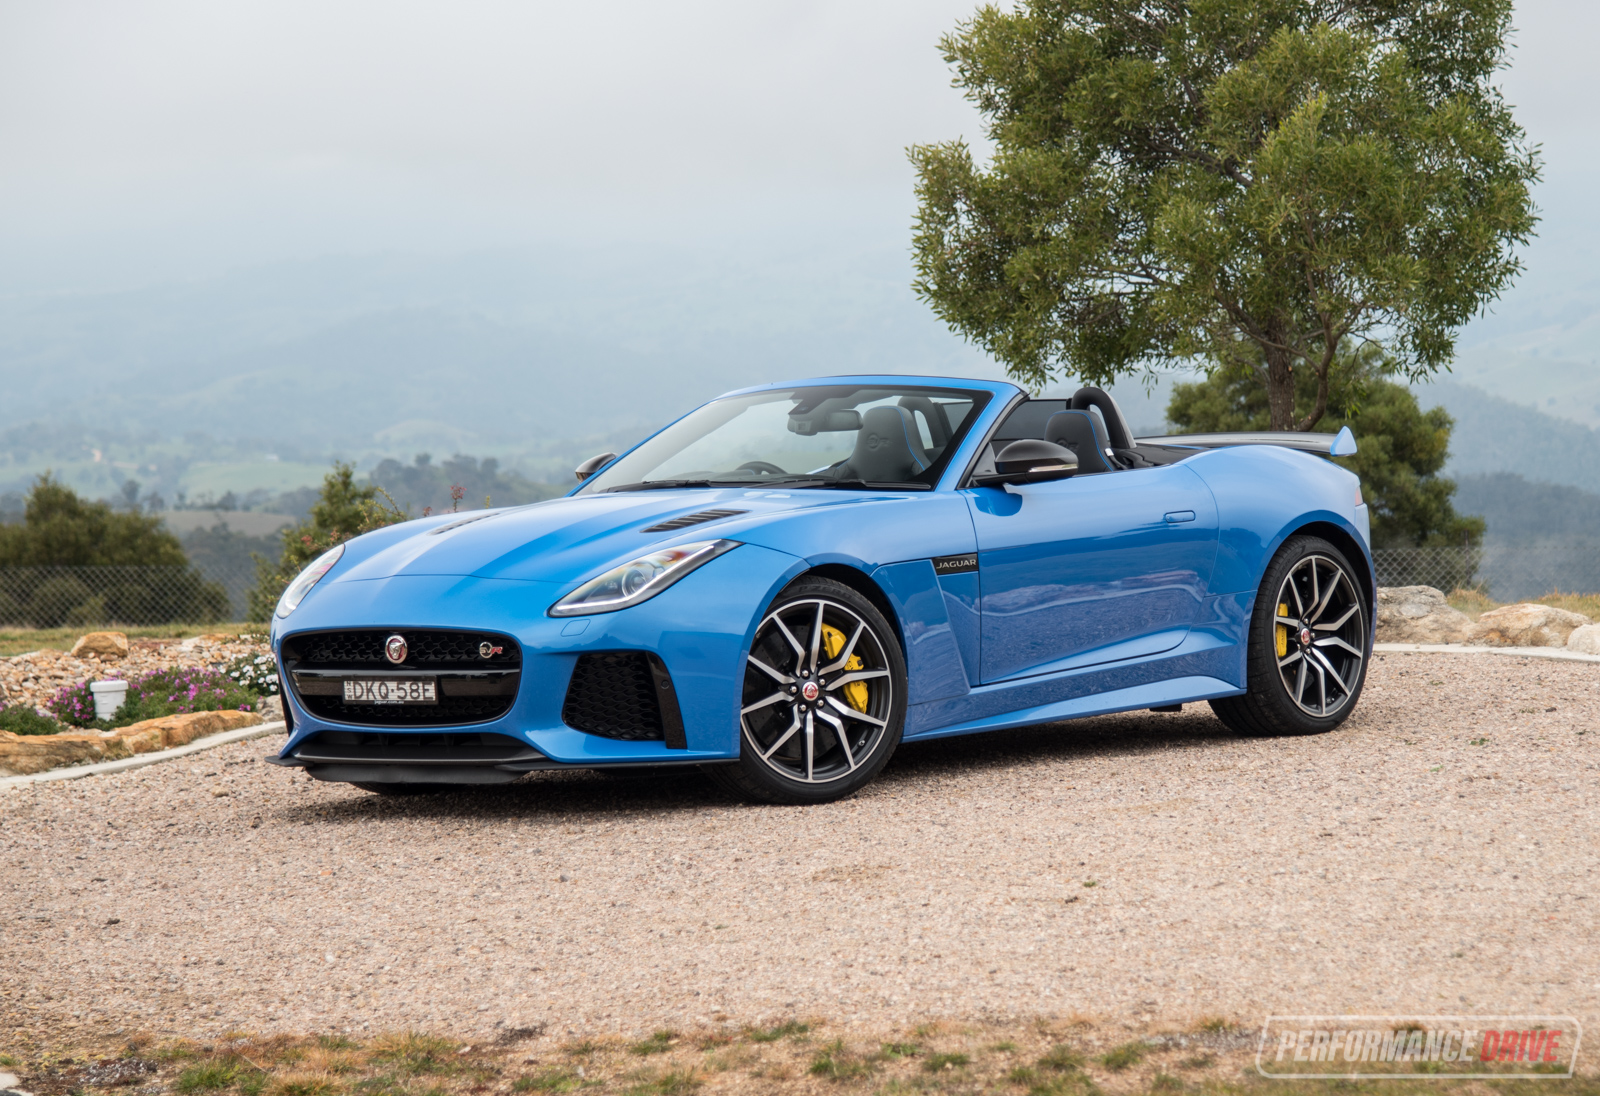 The Most Expensive Car In 2017 >> 2017 Jaguar F-Type SVR review (video)   PerformanceDrive